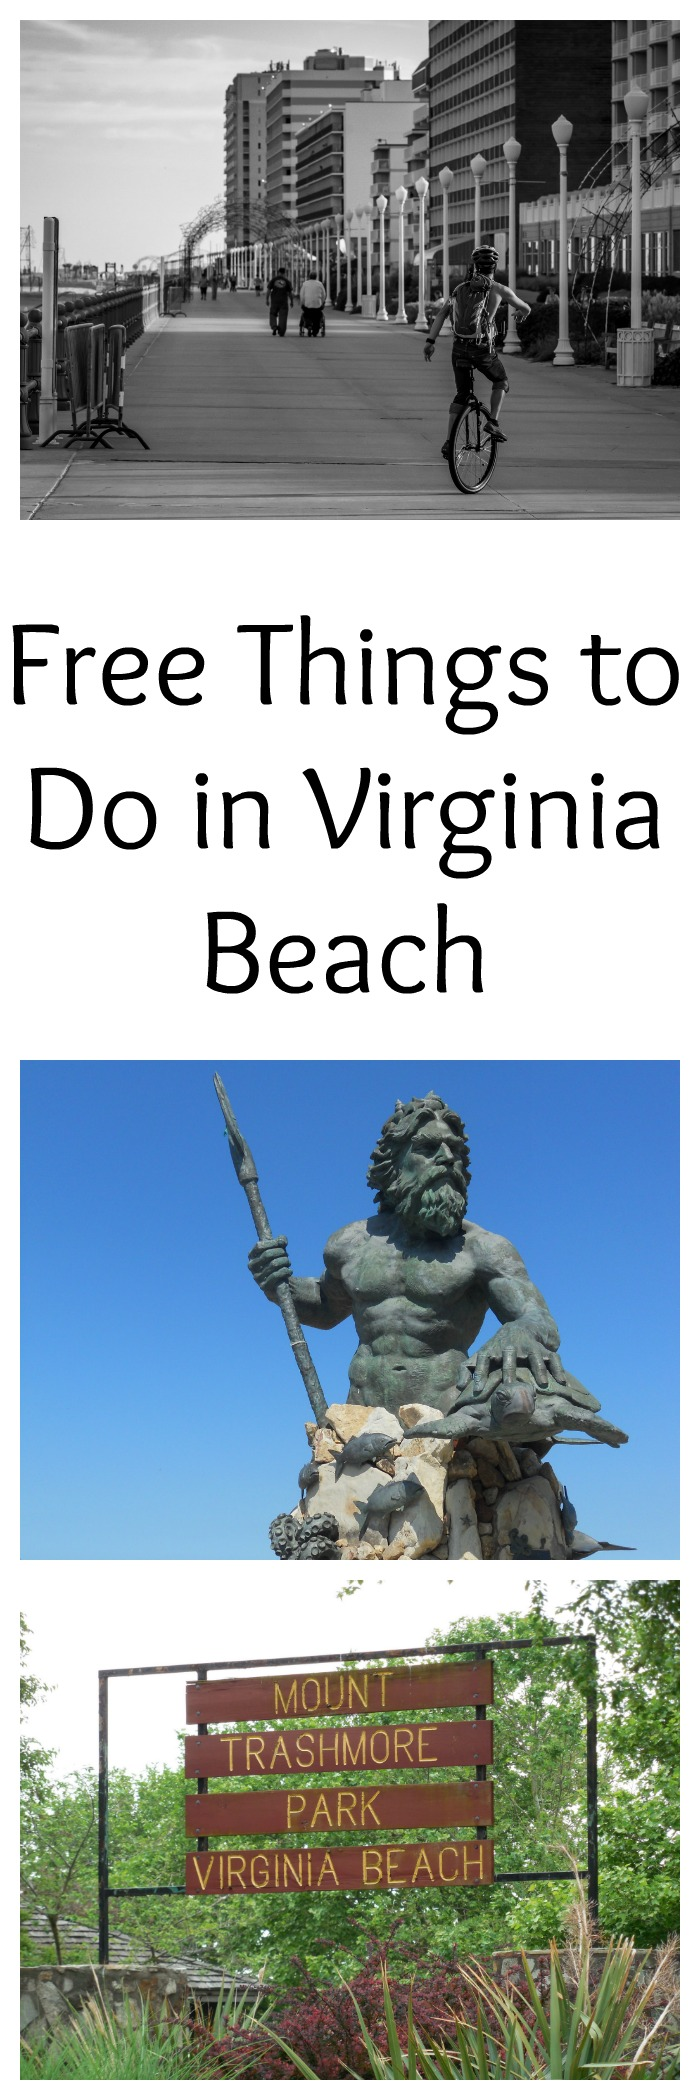 Looking for free things to do in Virginia Beach? Virginia Beach is such a fun family place to visit. Here are some free things to do in Virginia Beach.